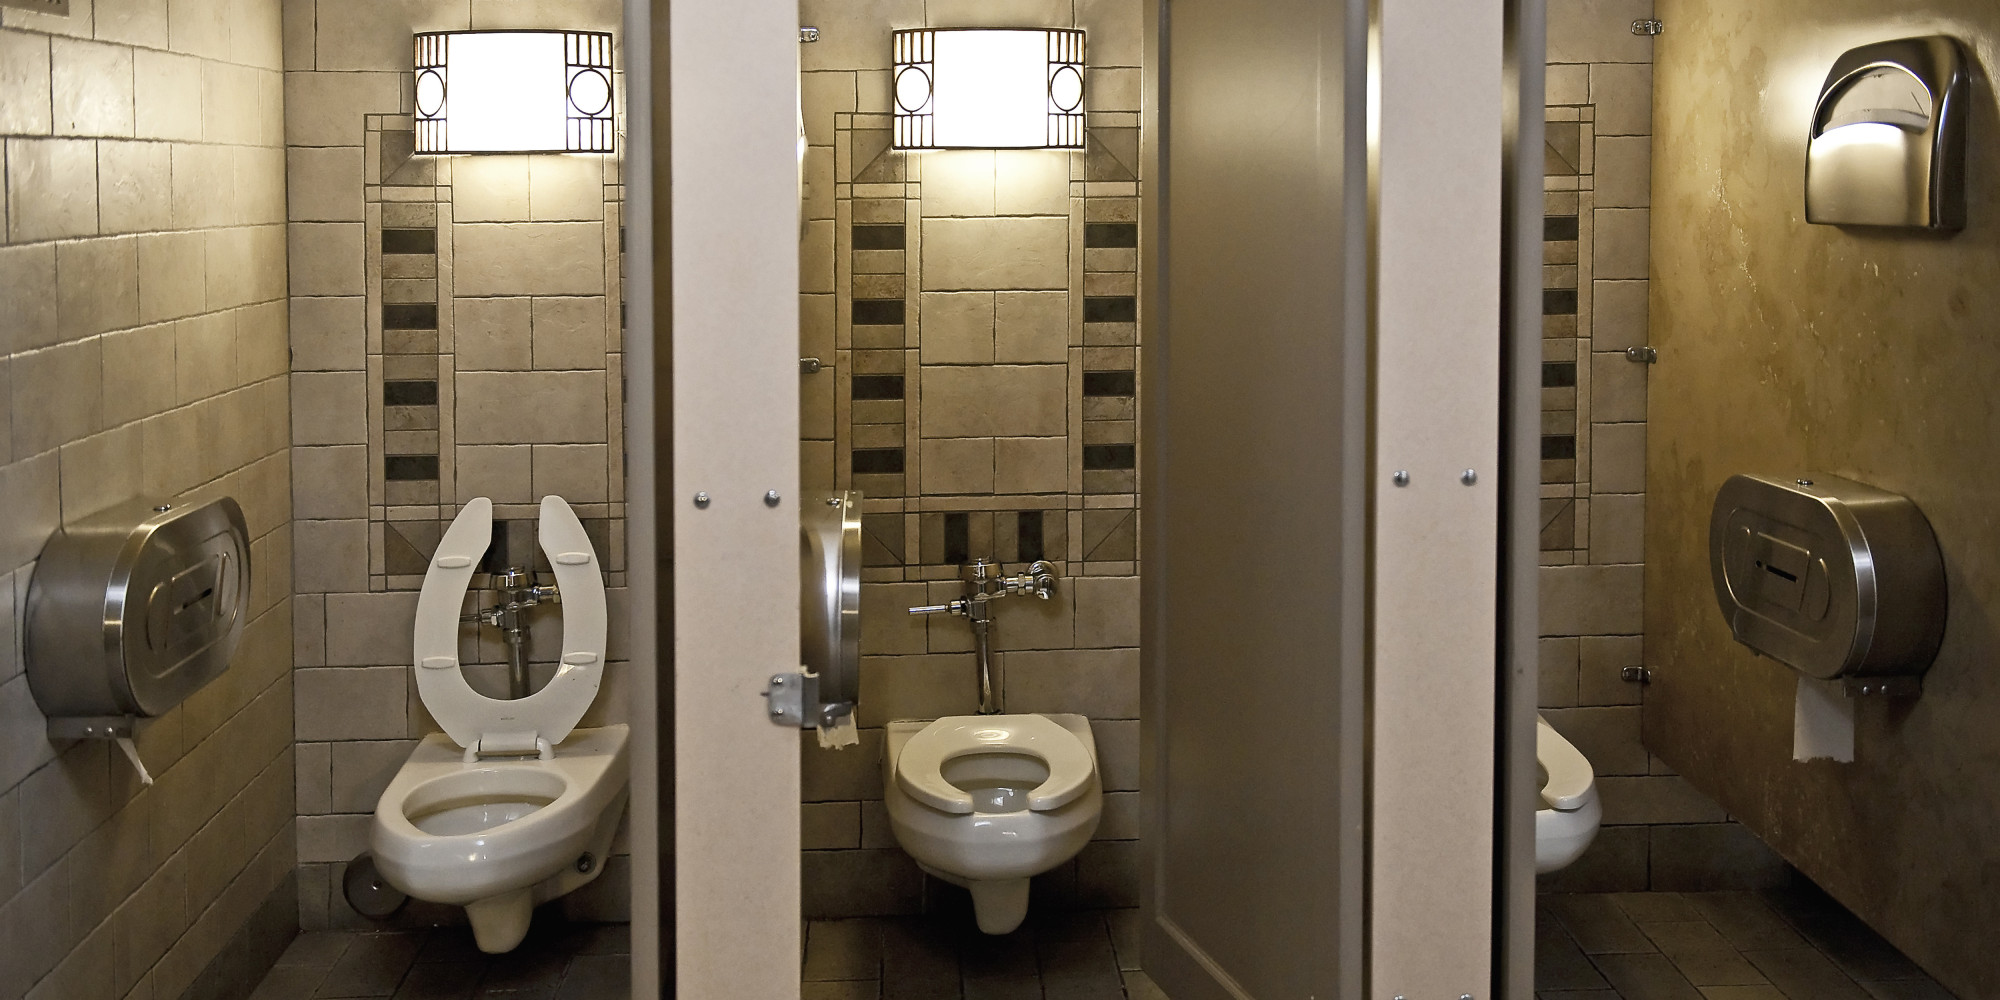 California border patrol supervisor arrested over bathroom camera huffpost for Which bathroom stall is used most often